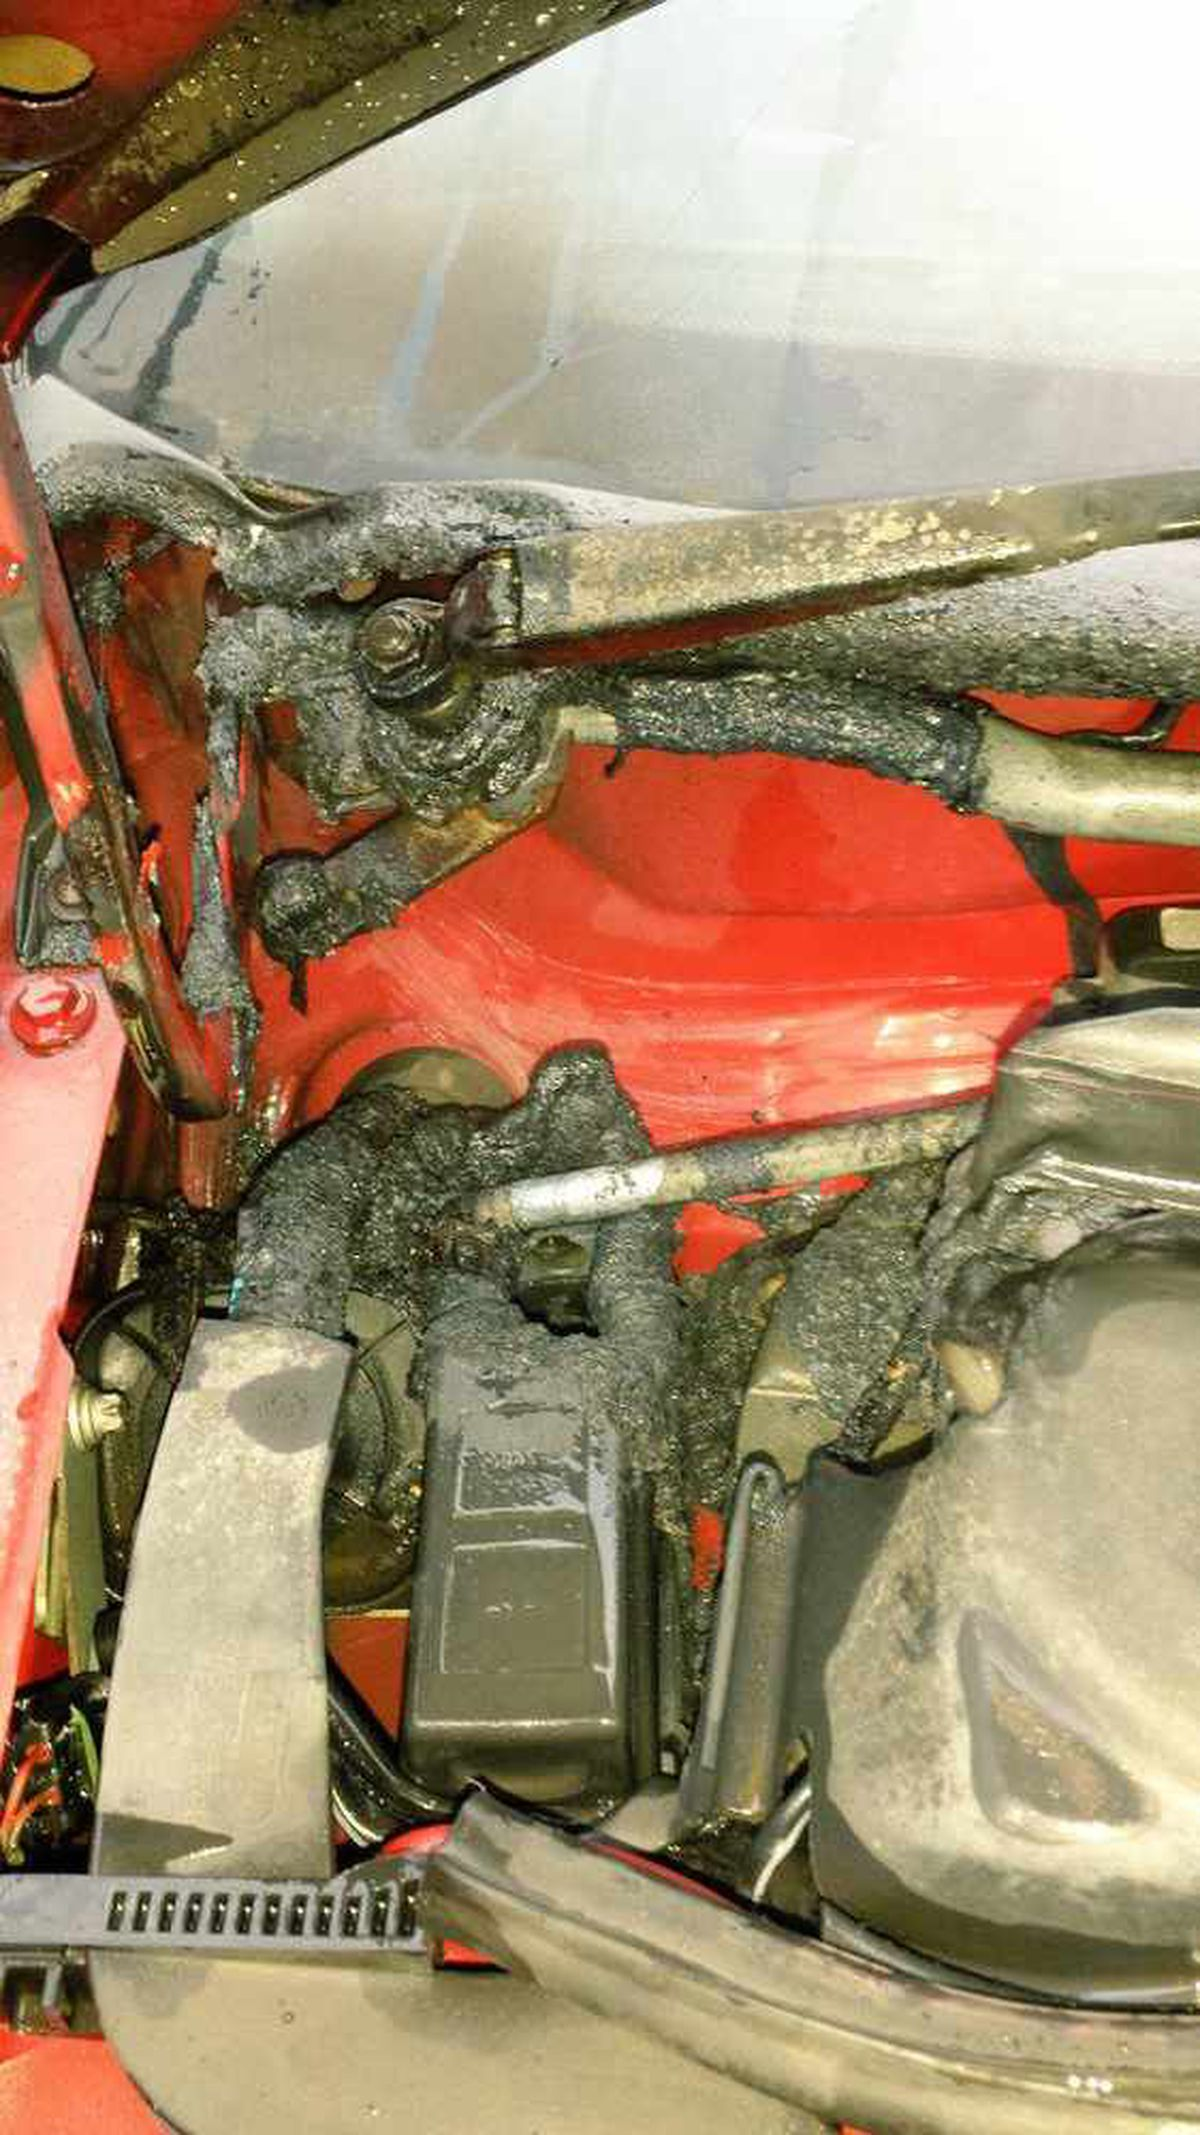 The damage caused to the car by the fire, picture: West Midlands Fire Service